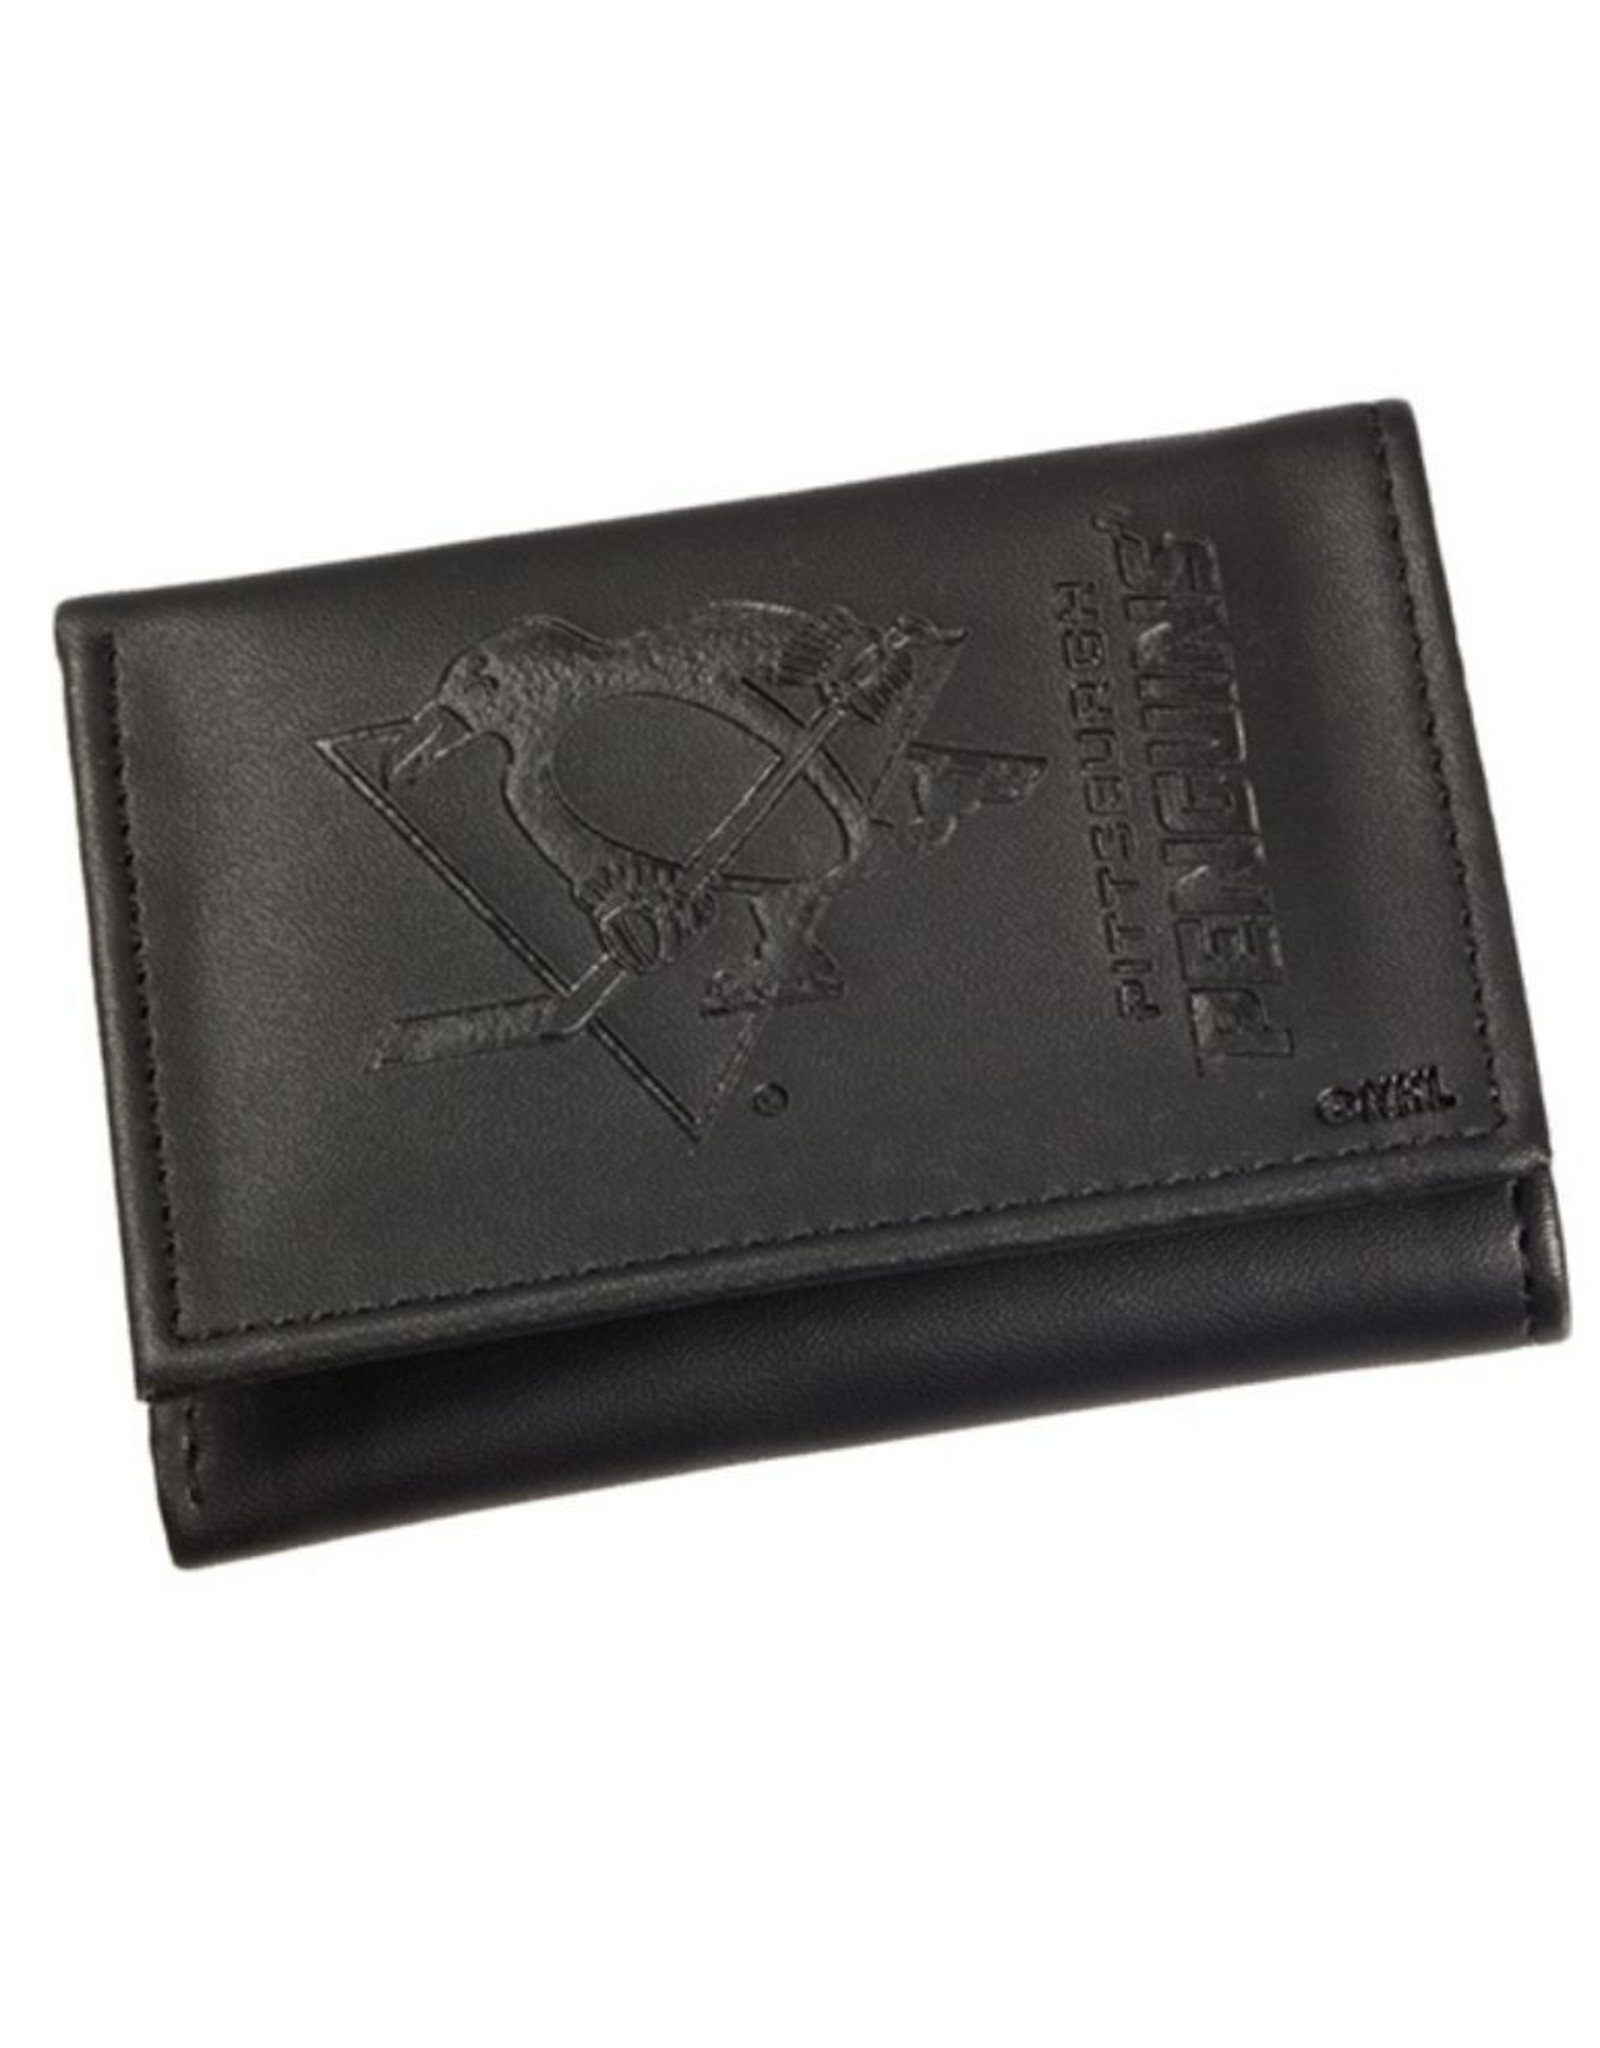 Team Sports Ameica NHL Tri-Fold Leather Embossed Wallet Penguins